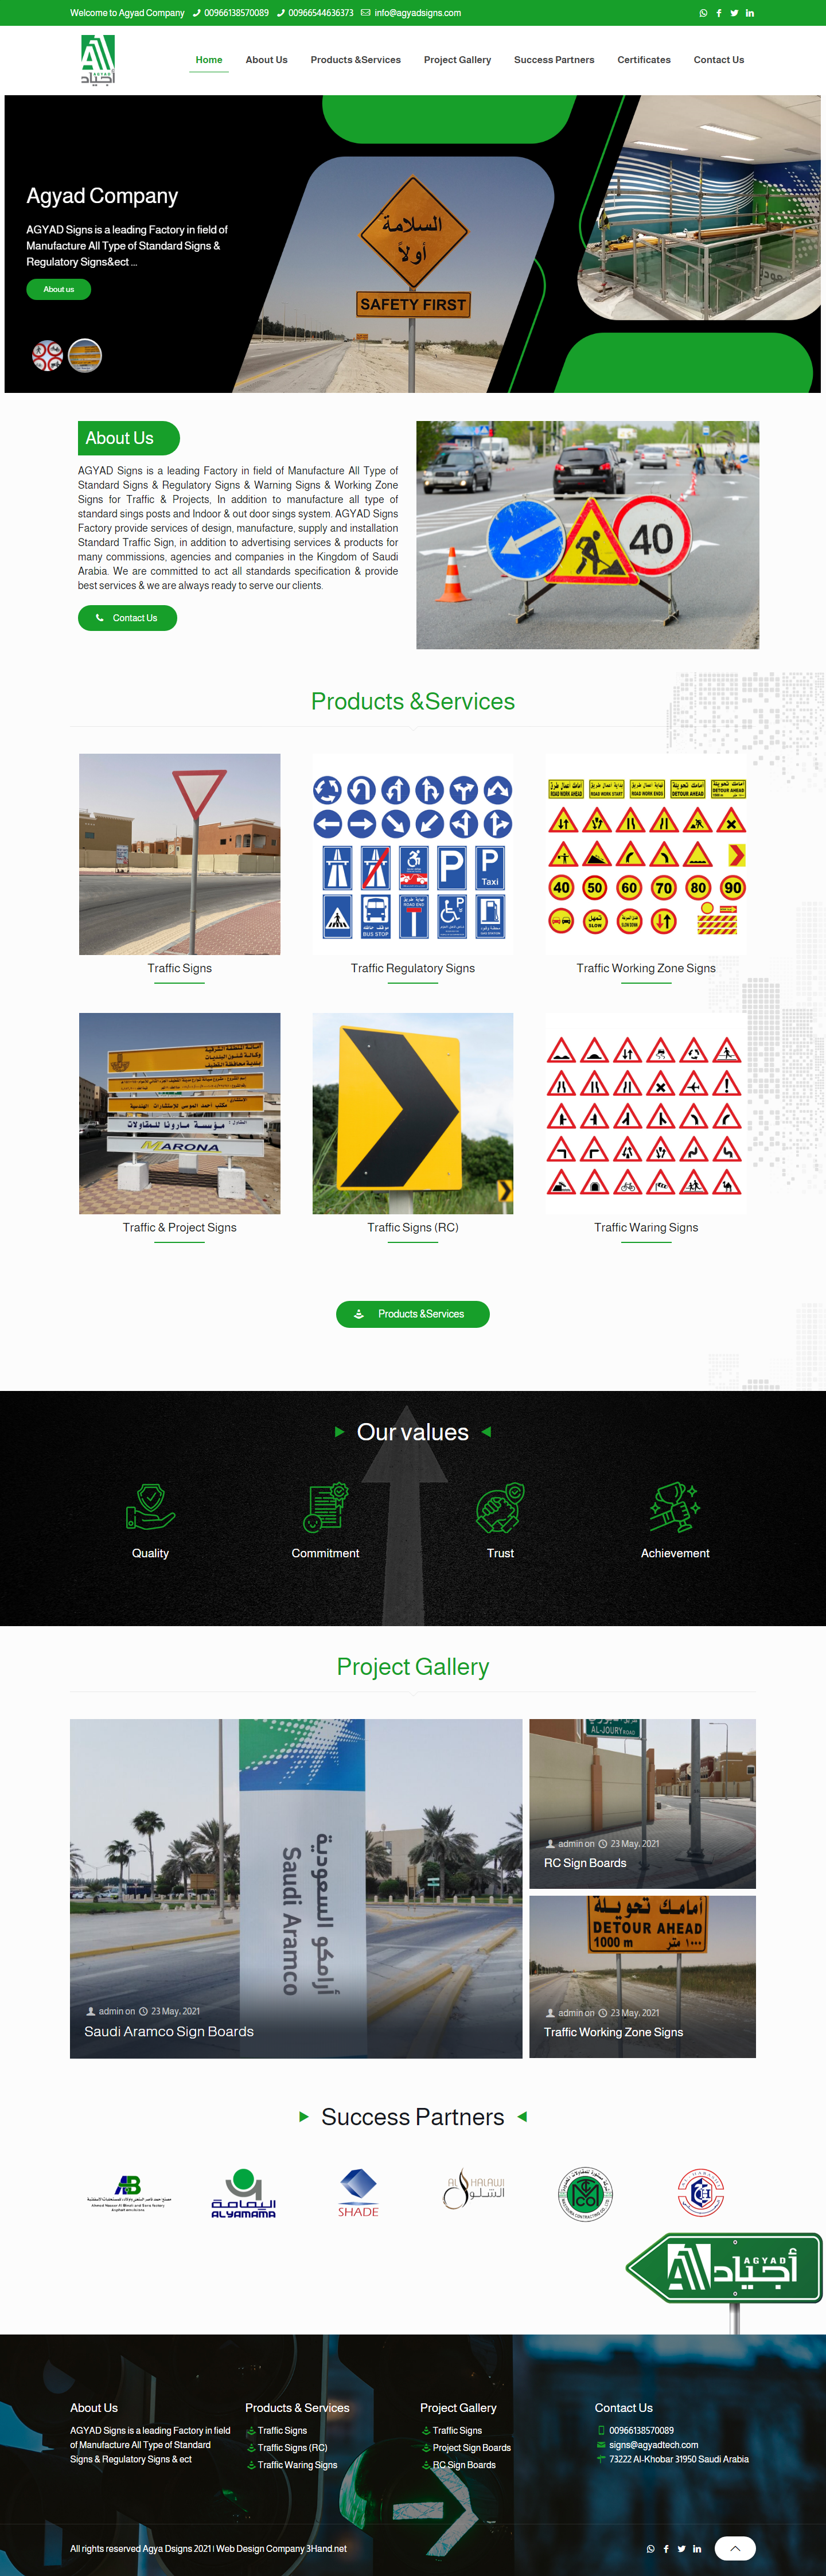 Agyad-–-Roads-Project-Signs1